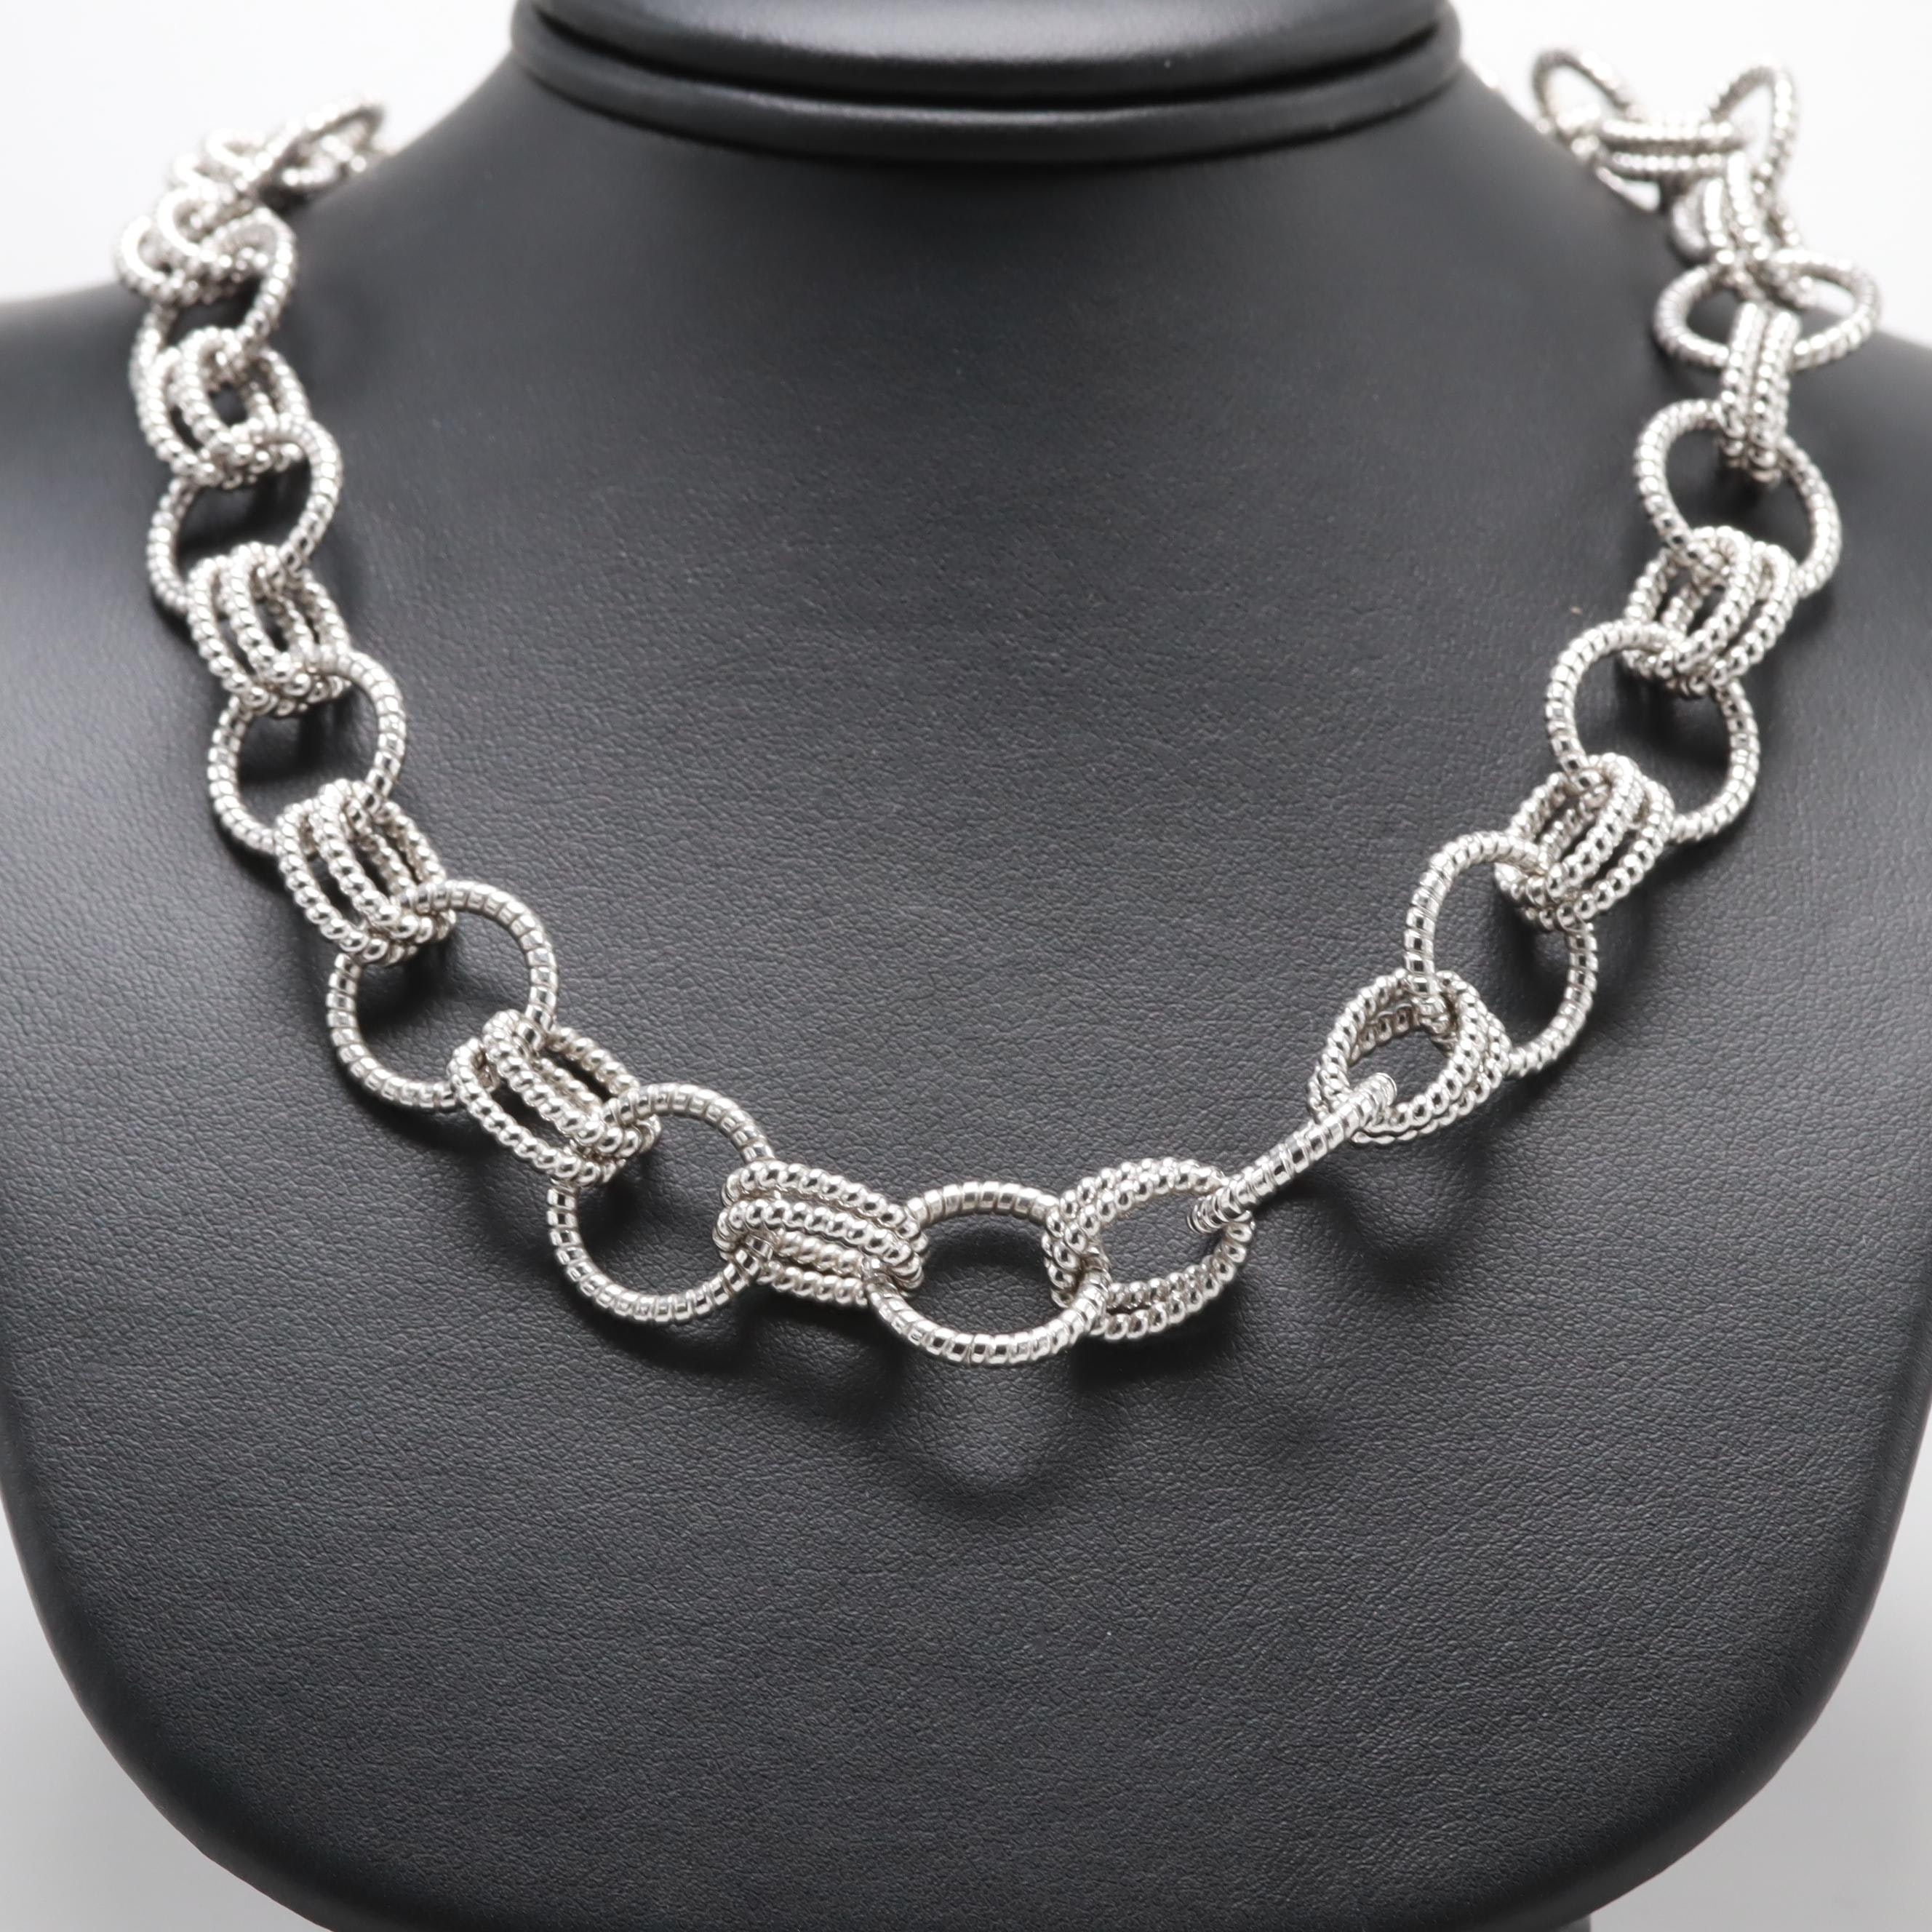 Judith Ripka Sterling Silver Black Onyx Necklace